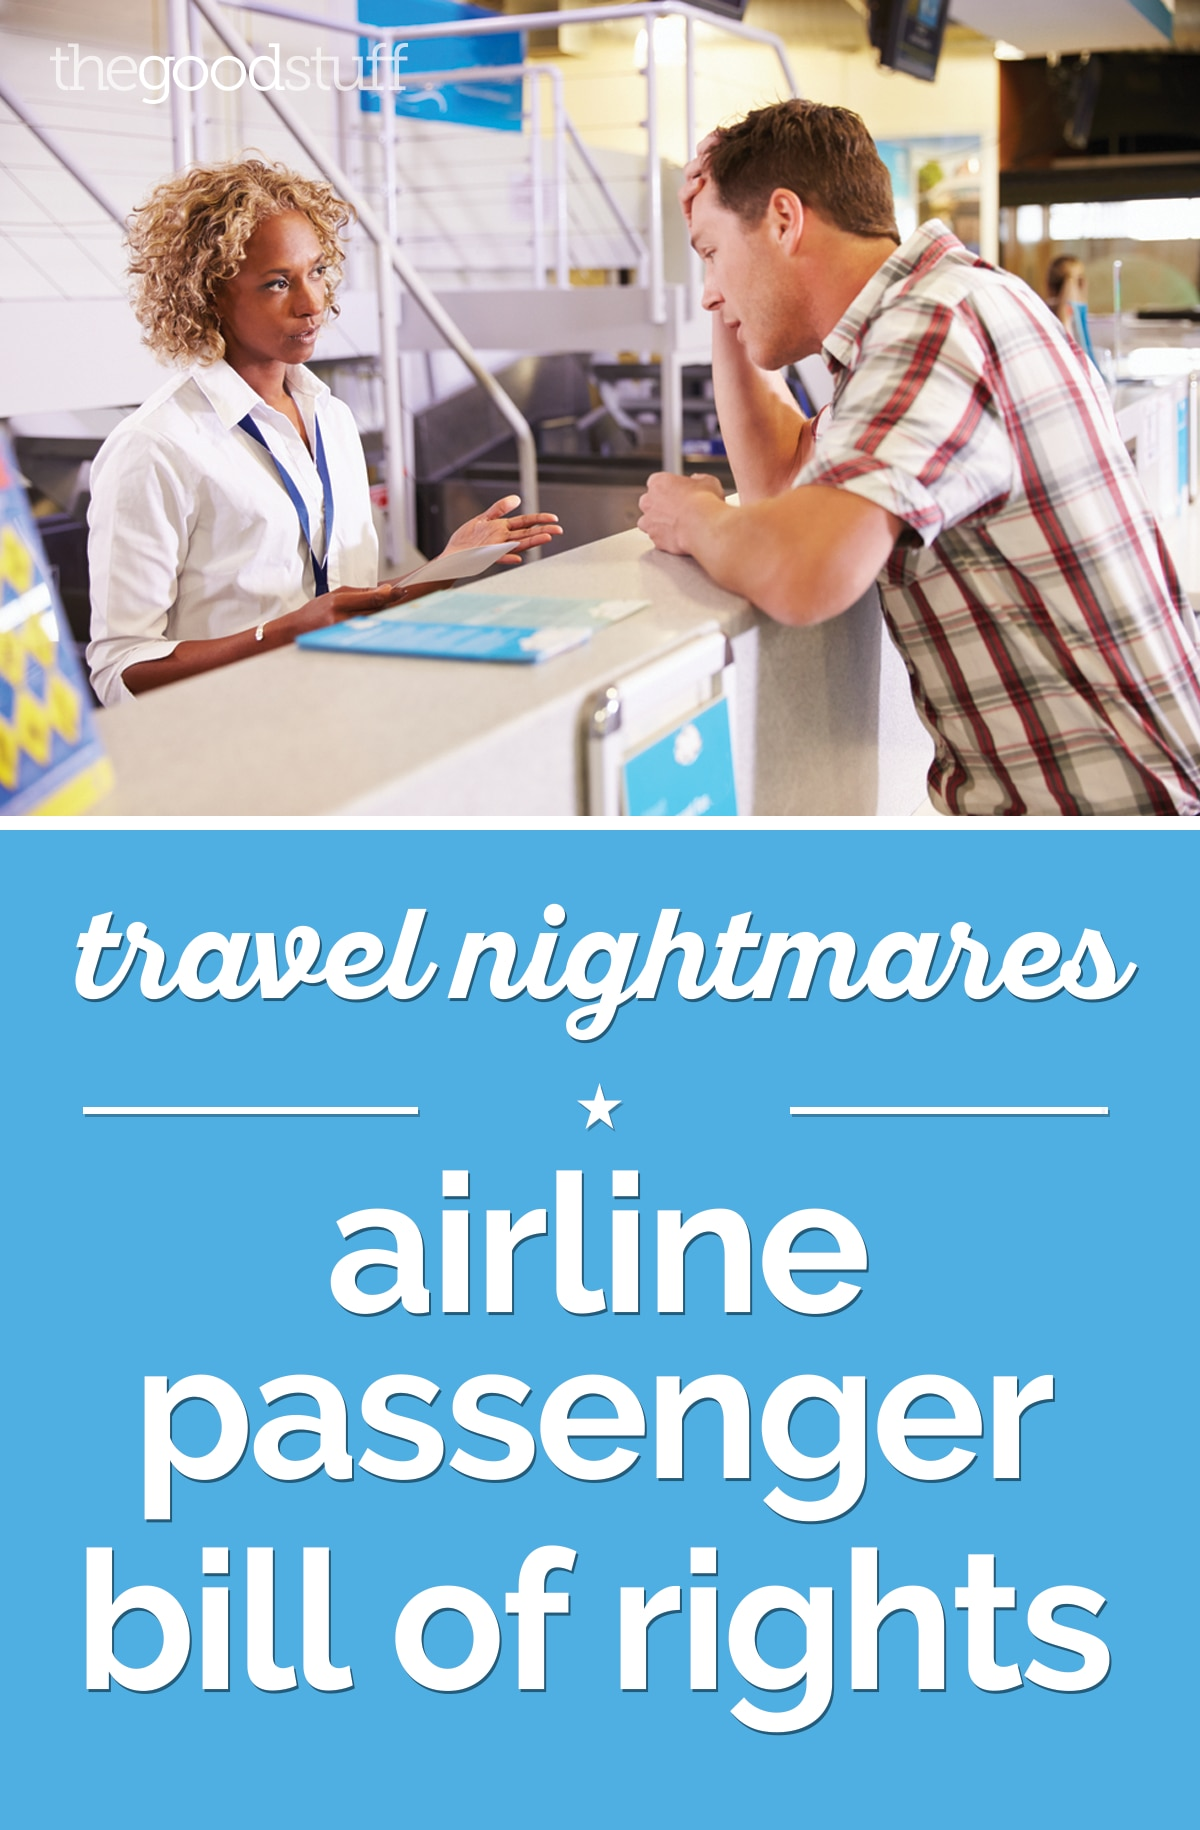 Travel Nightmares: Airline Passenger Bill of Rights | thegoodstuff